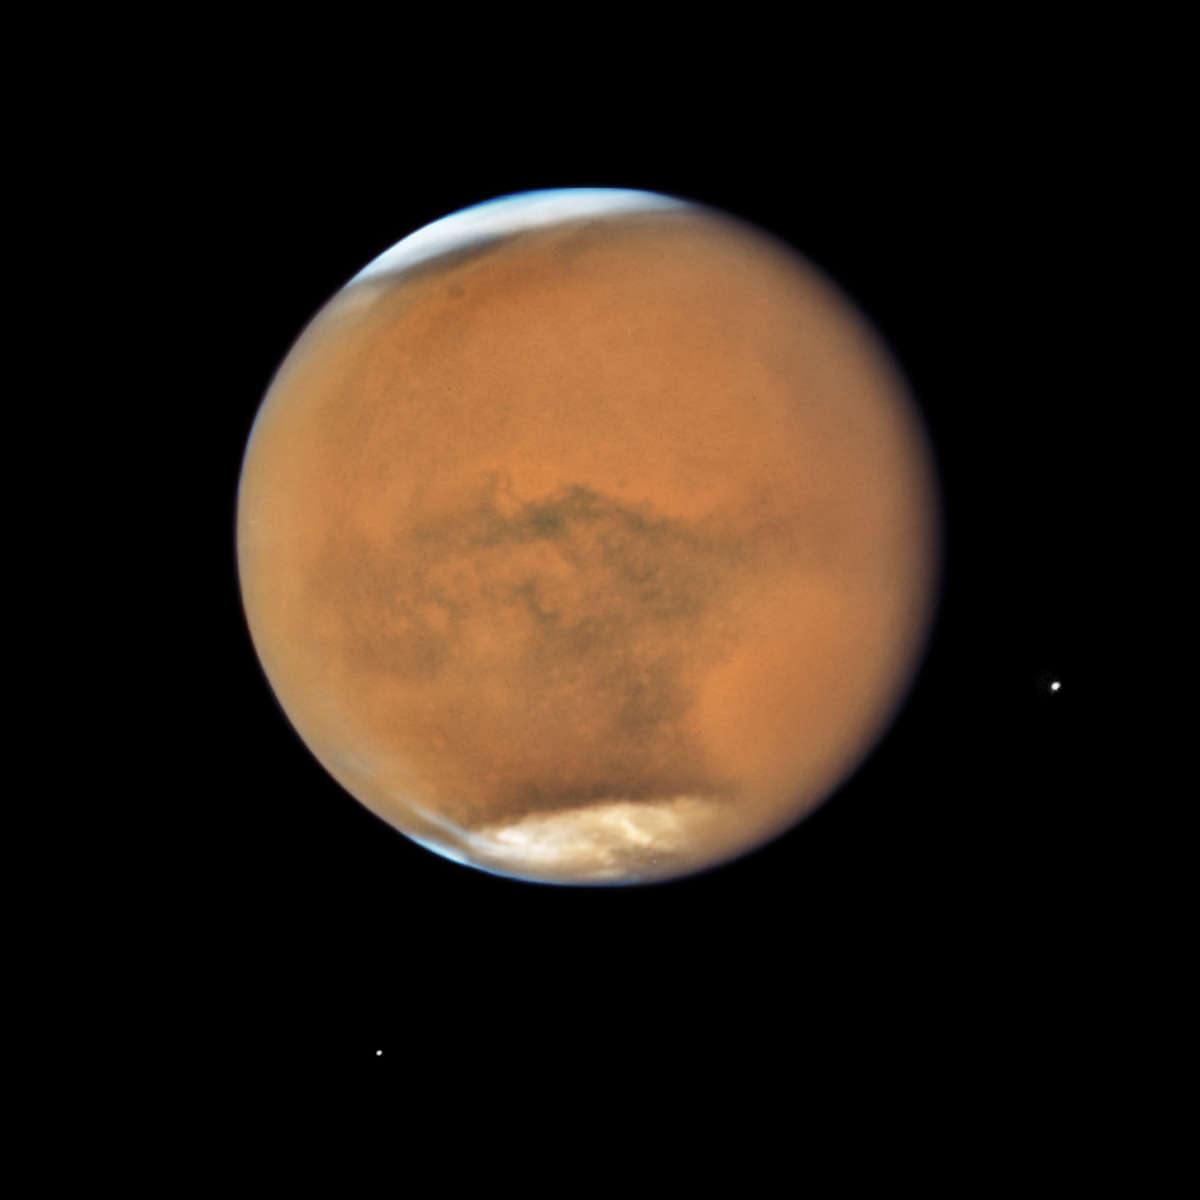 Mars, still obscured by a global dust storm, seen by Hubble on July 18, 2018. Credit: NASA, ESA, and STScI